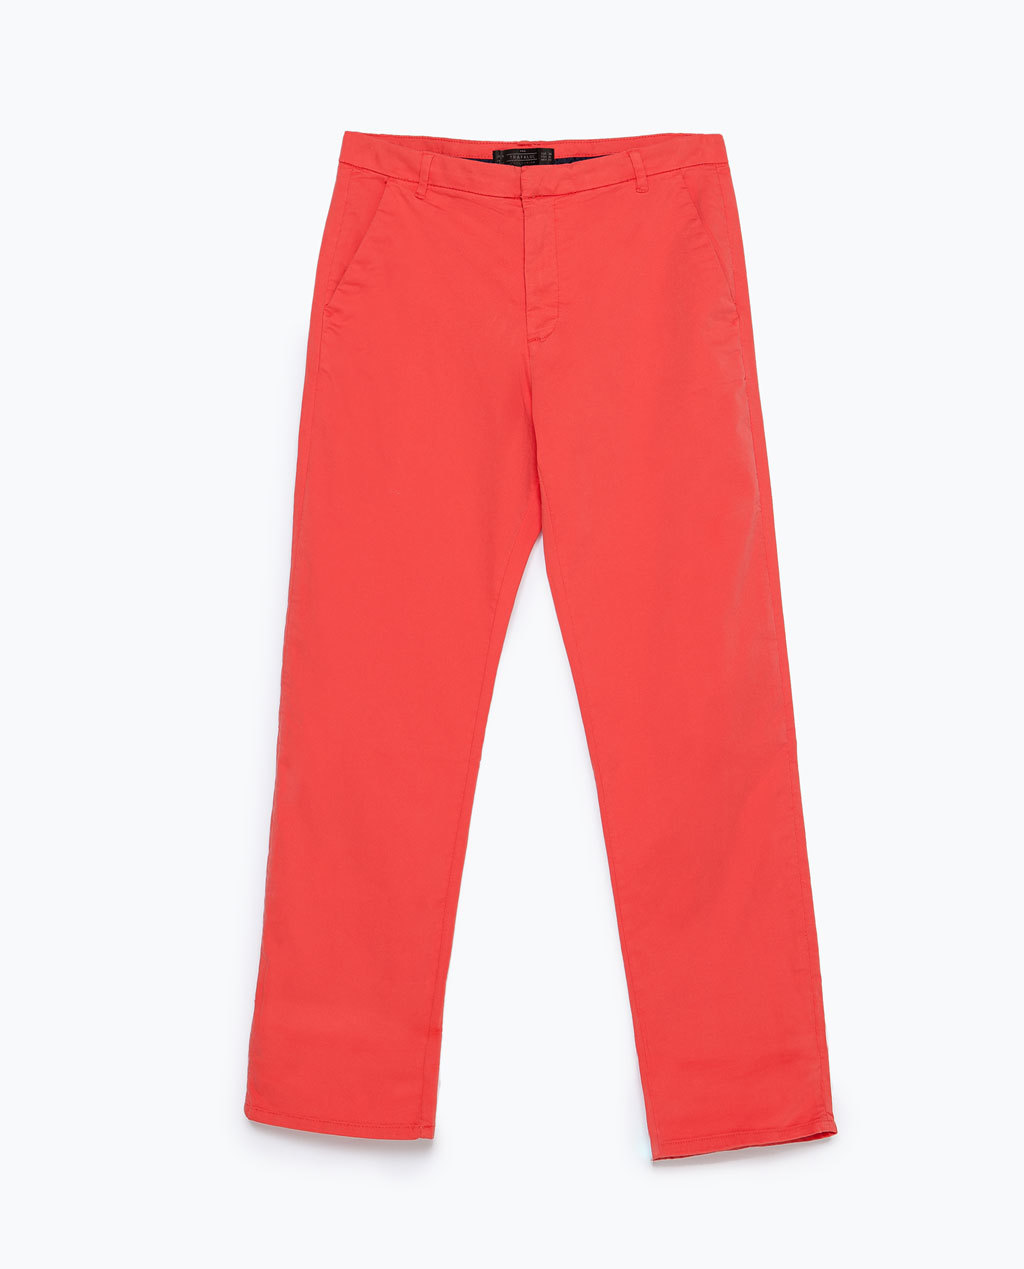 Straight Cut Trousers - pattern: plain; waist: mid/regular rise; predominant colour: bright orange; occasions: casual, creative work; length: calf length; fit: straight leg; pattern type: fabric; texture group: woven light midweight; style: standard; season: s/s 2015; wardrobe: highlight